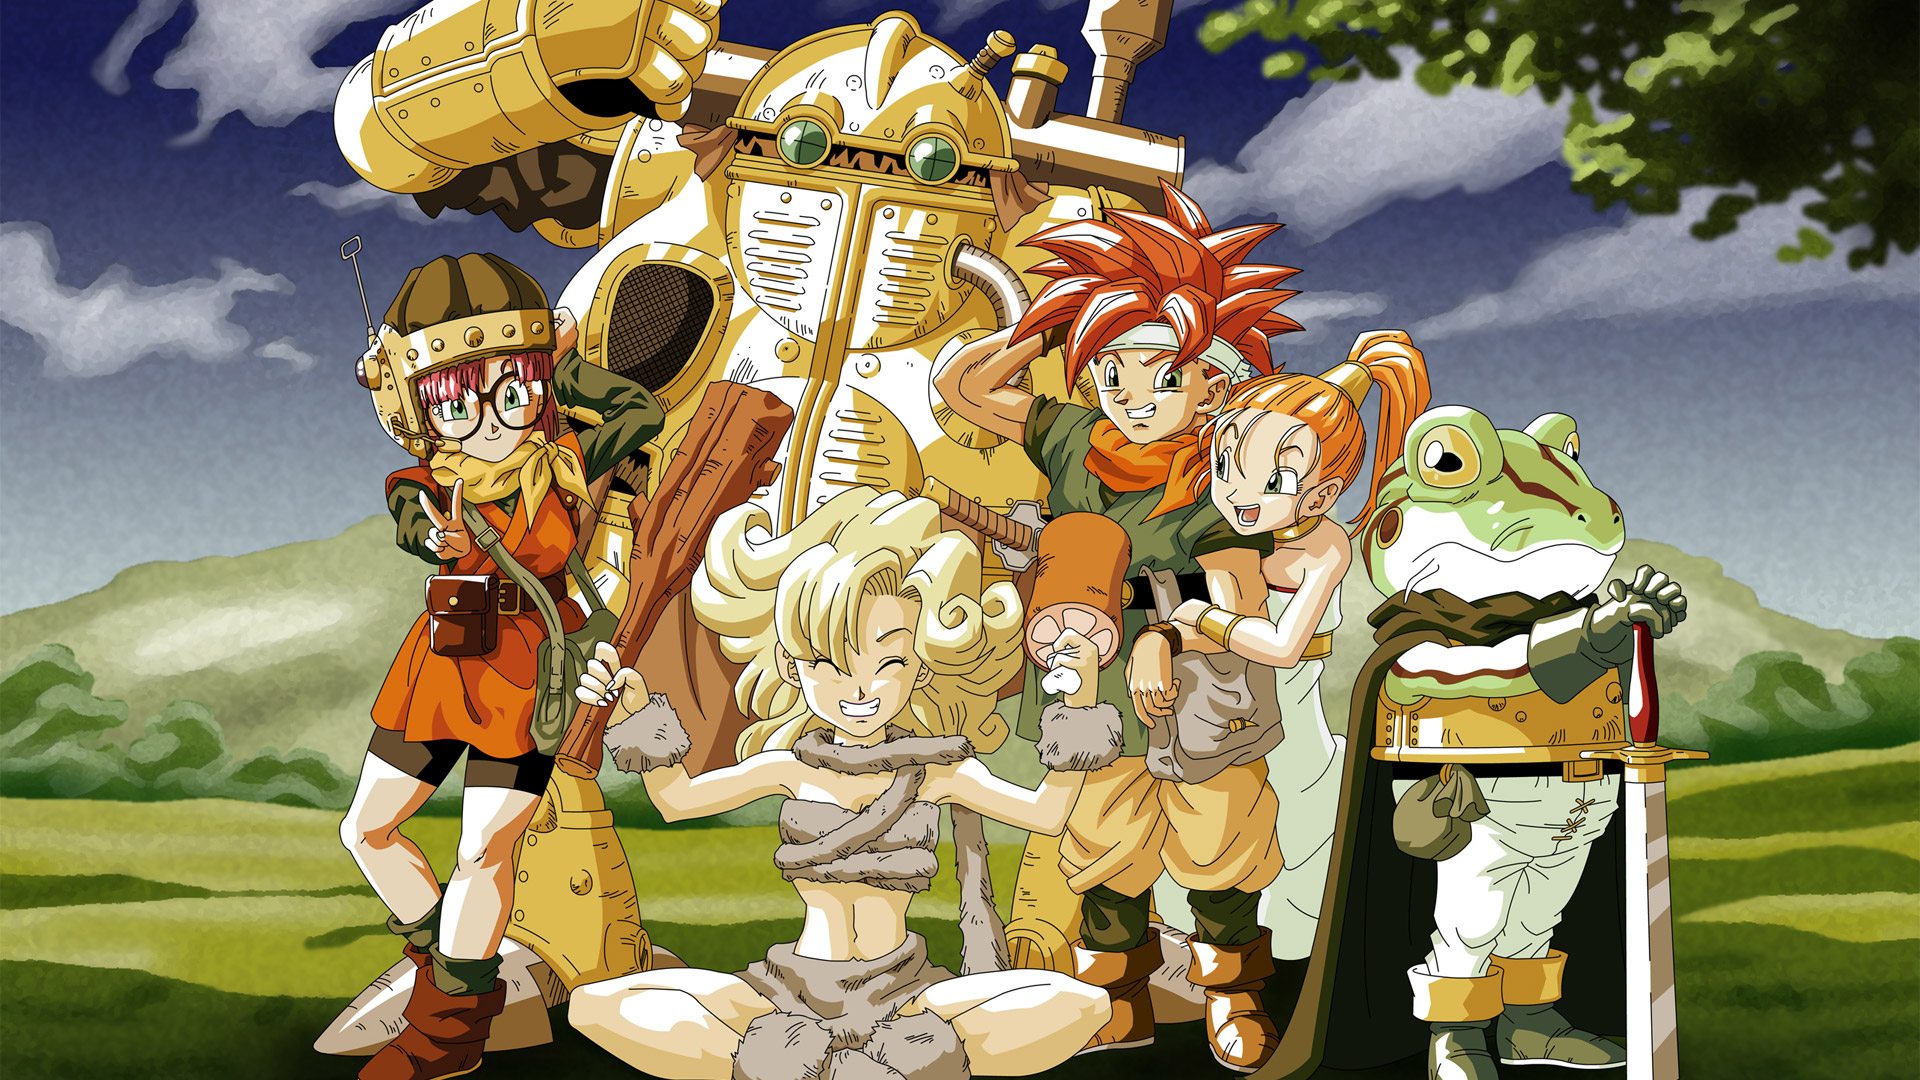 Free Chrono Trigger Wallpaper in 1920x1080